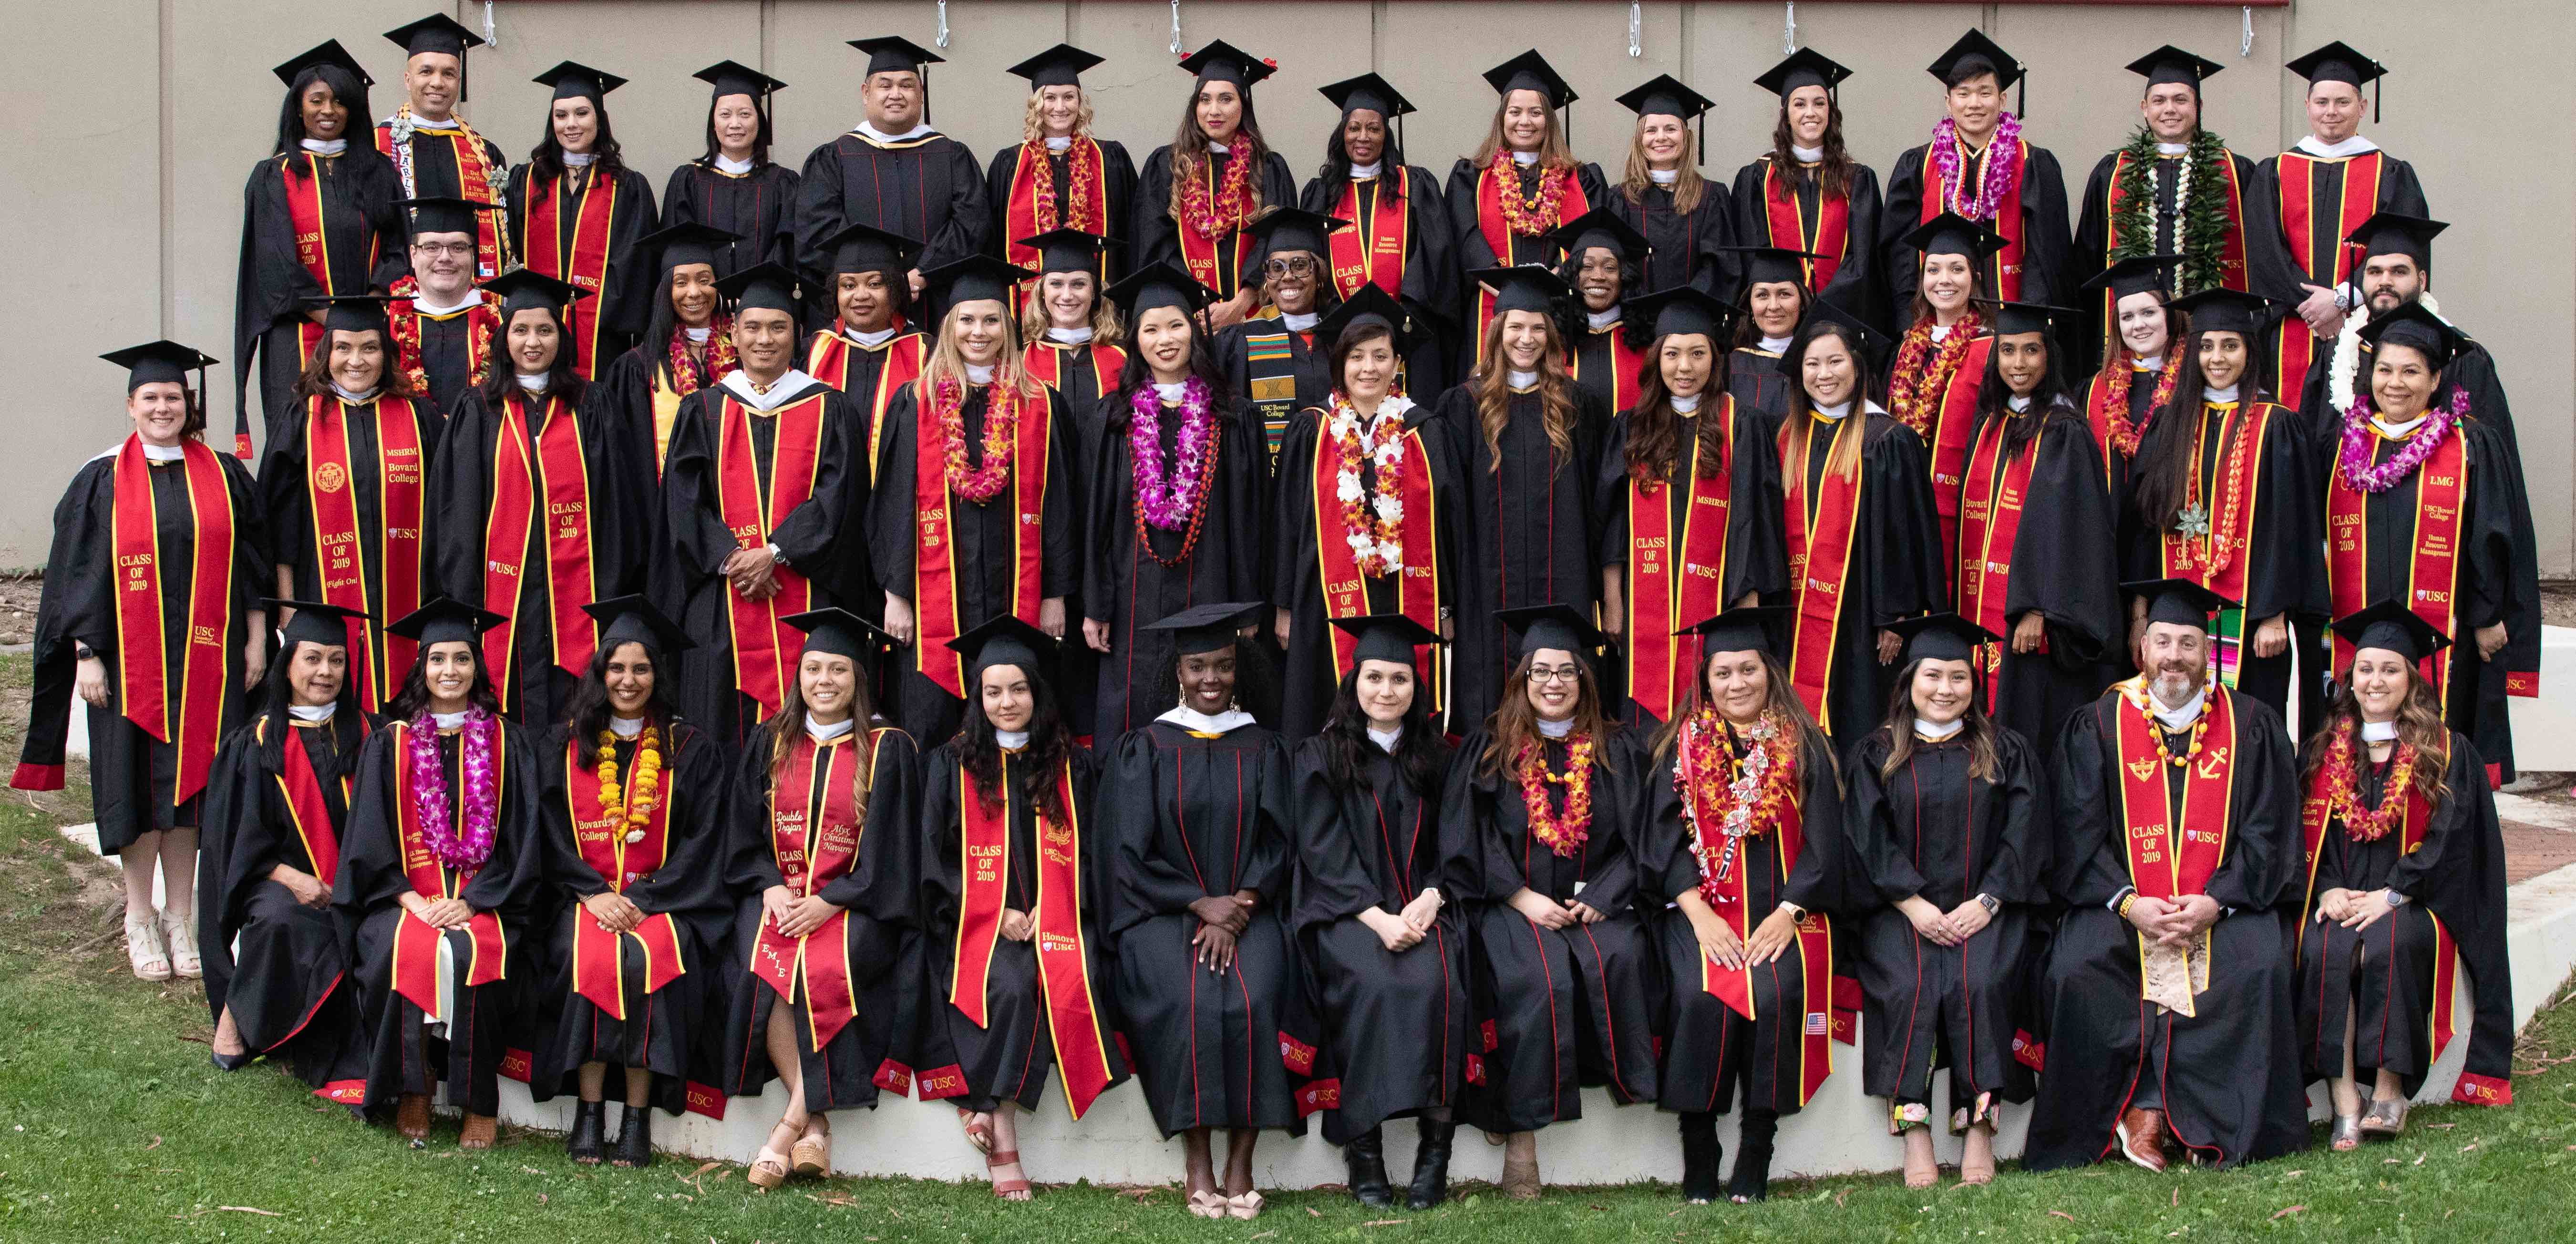 Group photo of USC Bovard College MS in Human Resource Management graduates at commencement